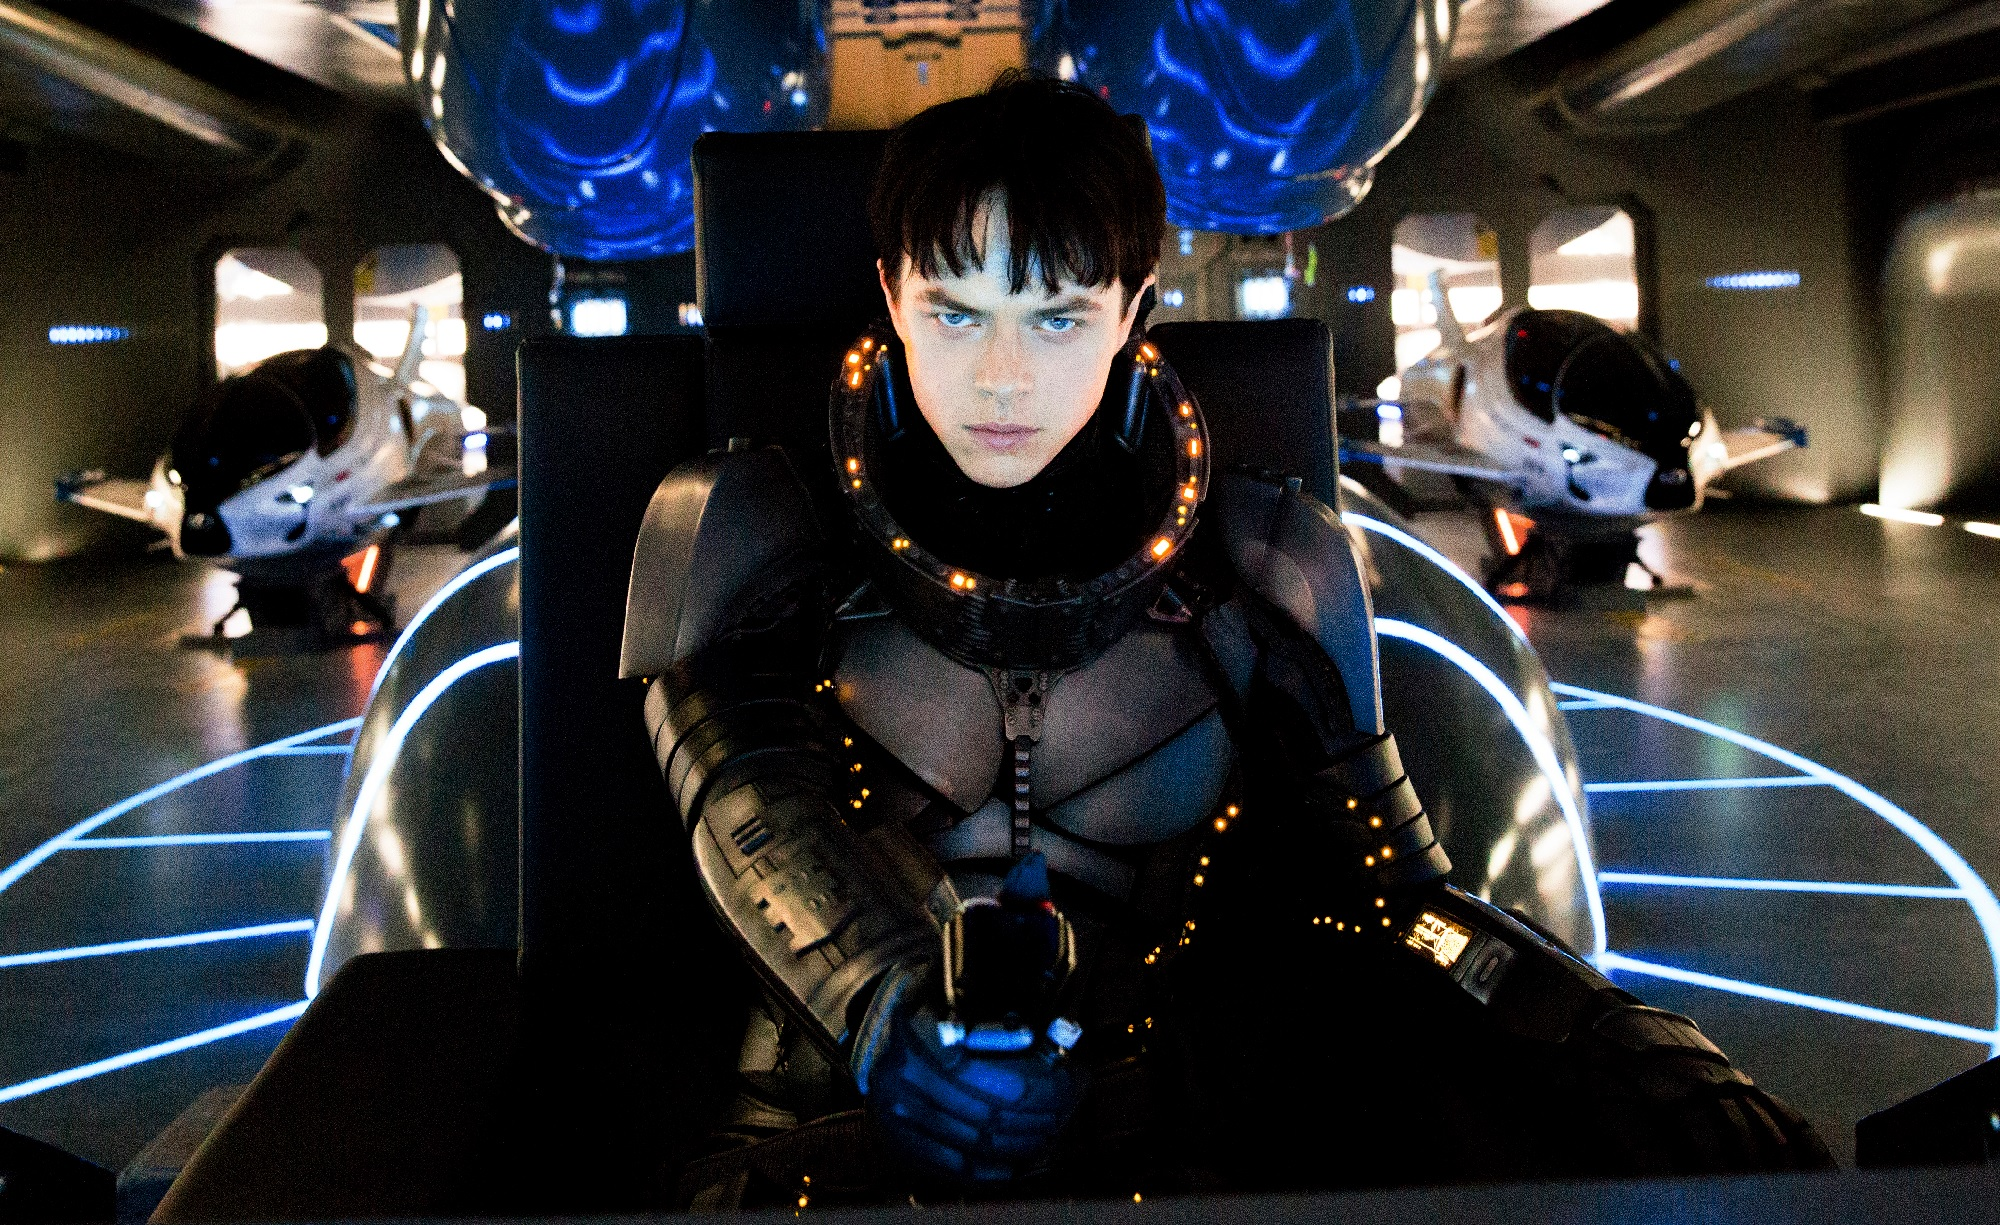 New Image from Luc Besson's 'Valerian' Space Epic Unveiled at SDCC 2016